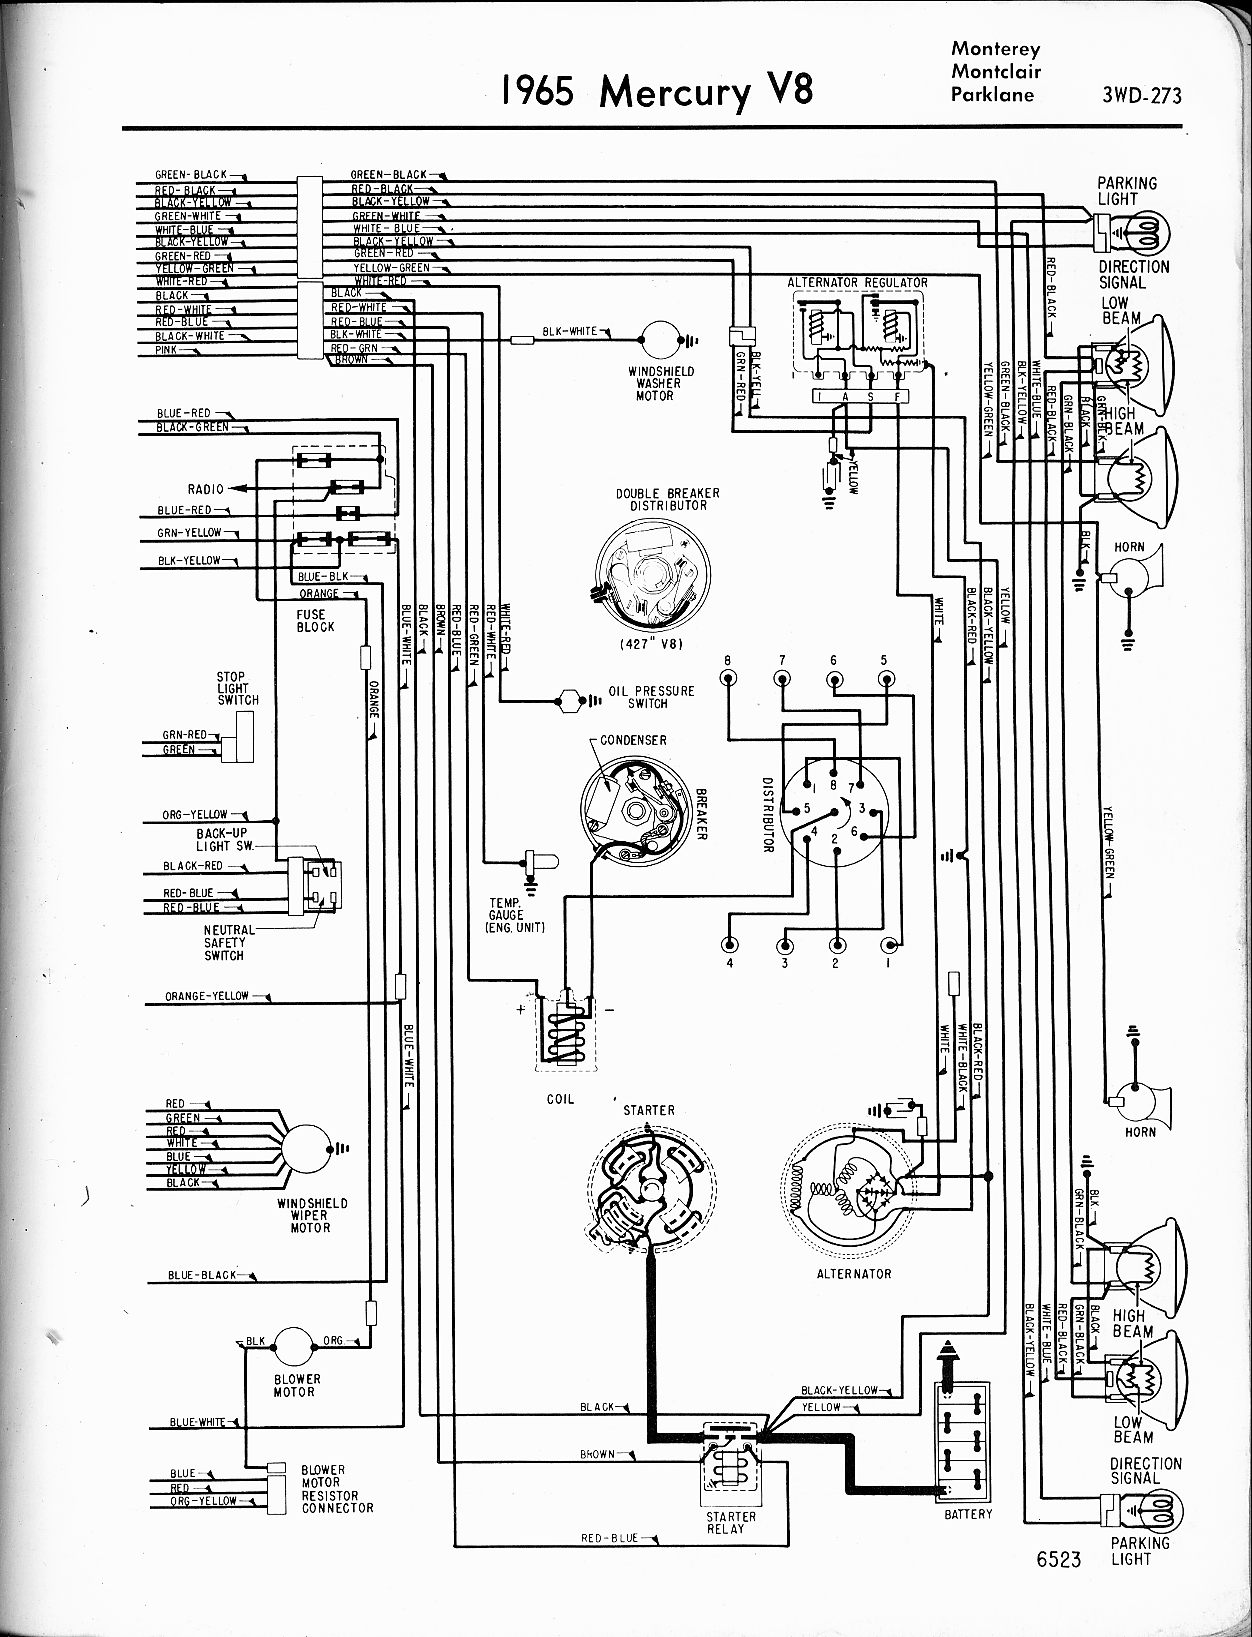 MWire5765 273 mercury wiring diagrams the old car manual project light switch diagram 1960 chevy pickup at soozxer.org